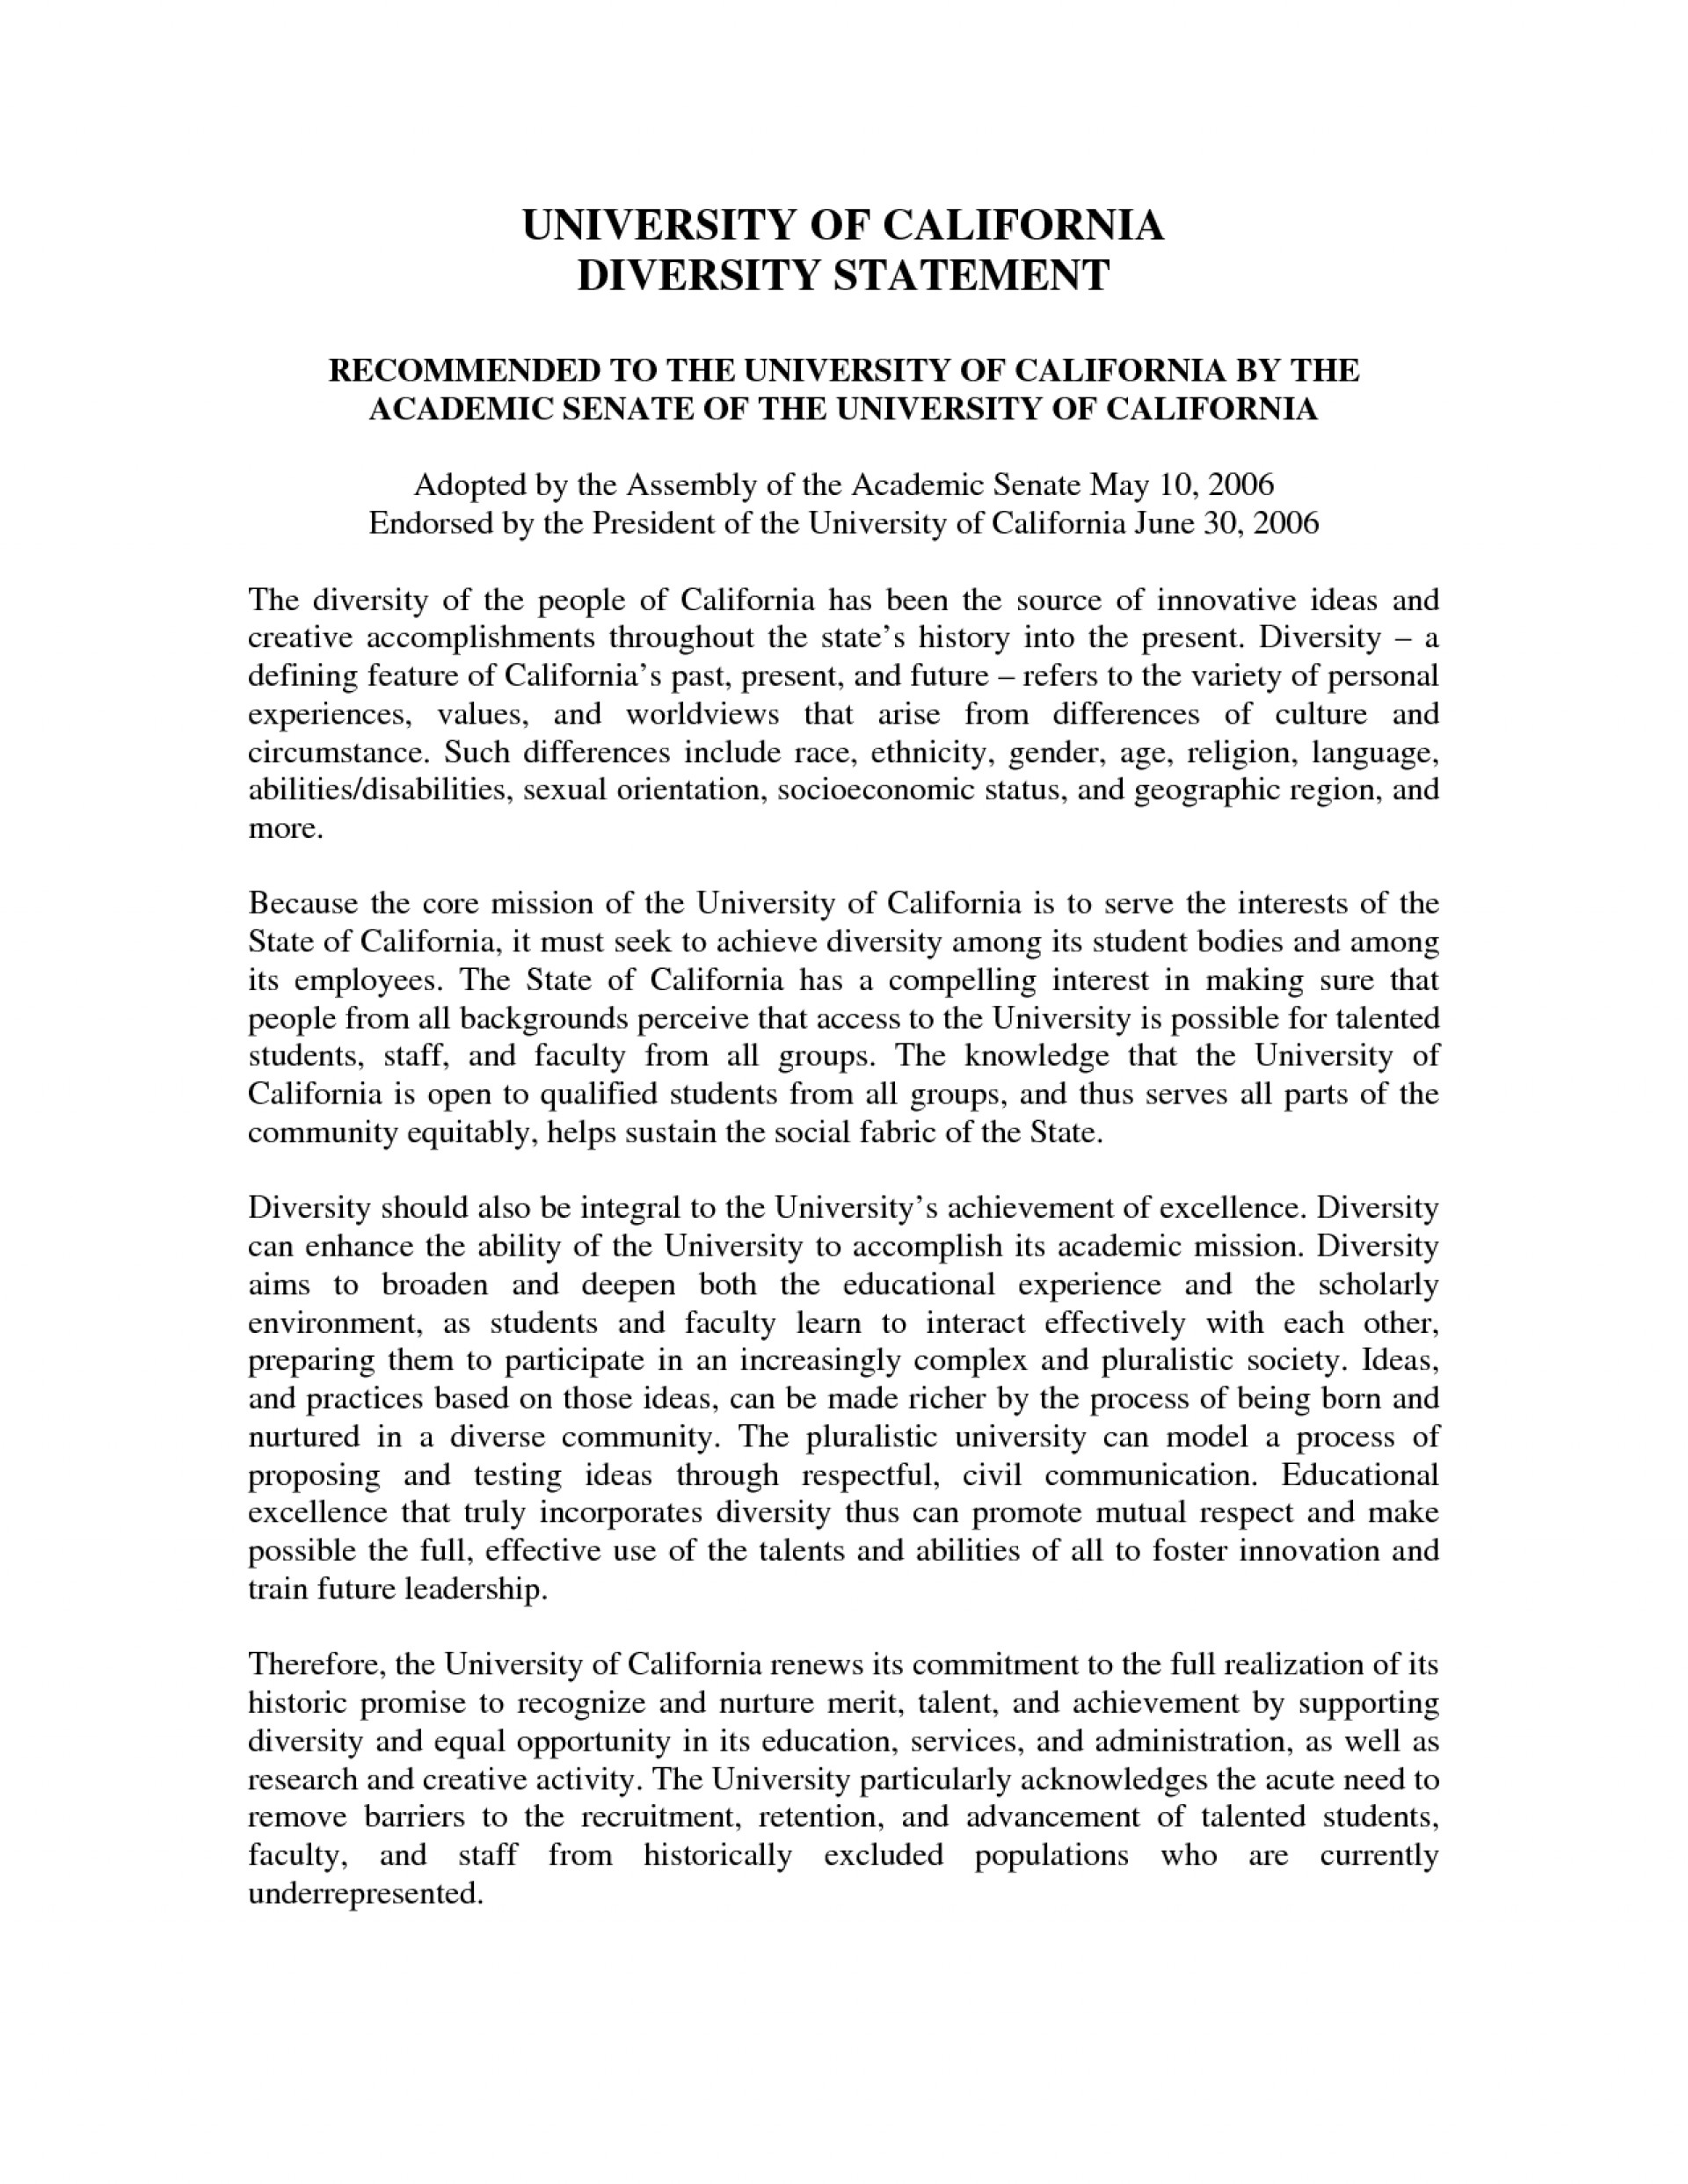 003 Essay Example What Is Diversity Essays On In Colleges How Will You Contribute To Sample Statement Template Remarkable Pdf 1920